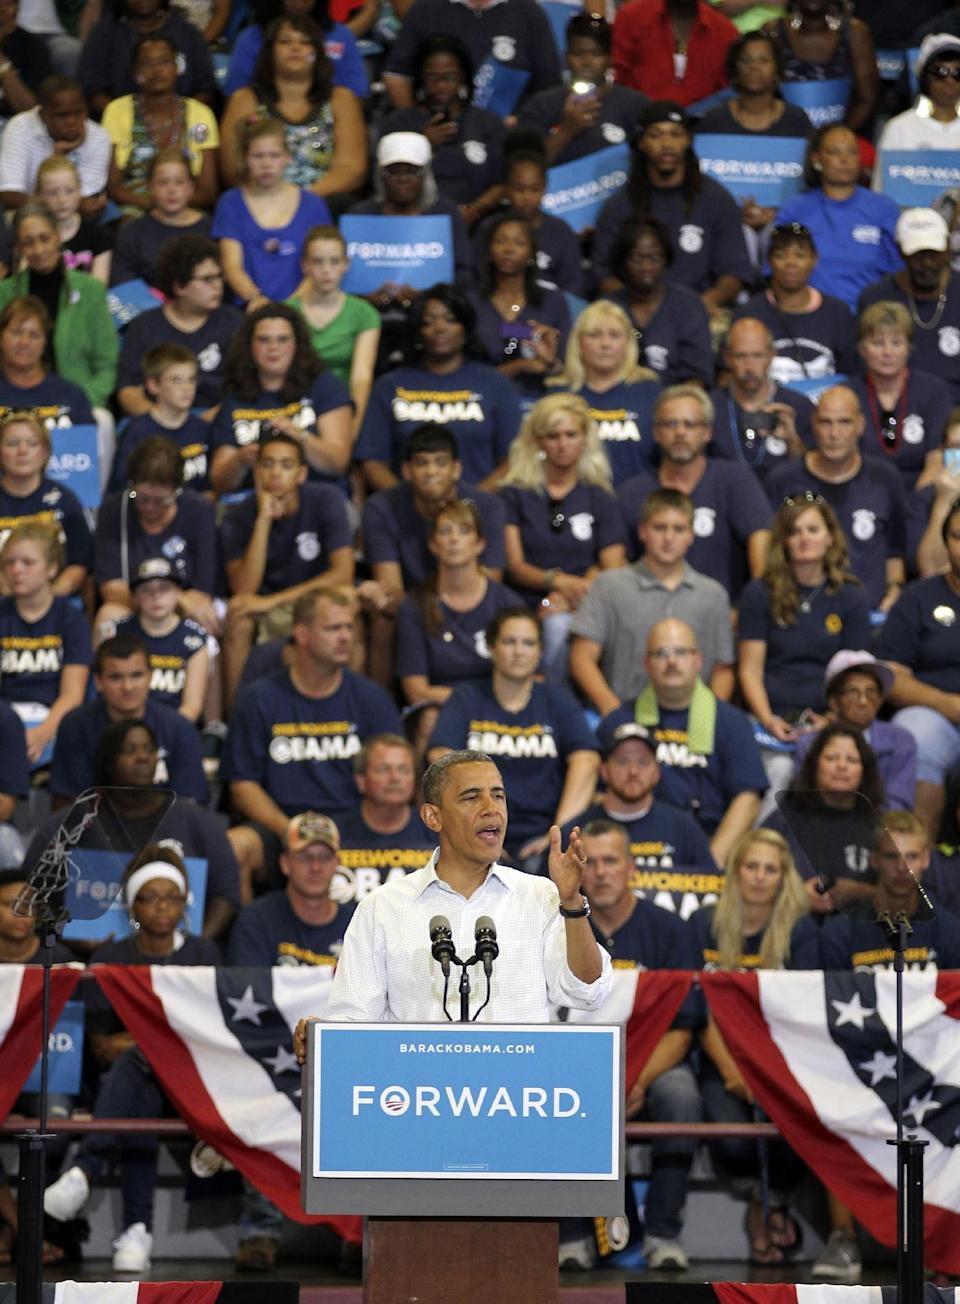 President Barack Obama speaks at a campaign event at Scott High School Monday, Sept. 3, 2012, in Toledo, Ohio. (AP Photo/Tony Dejak)